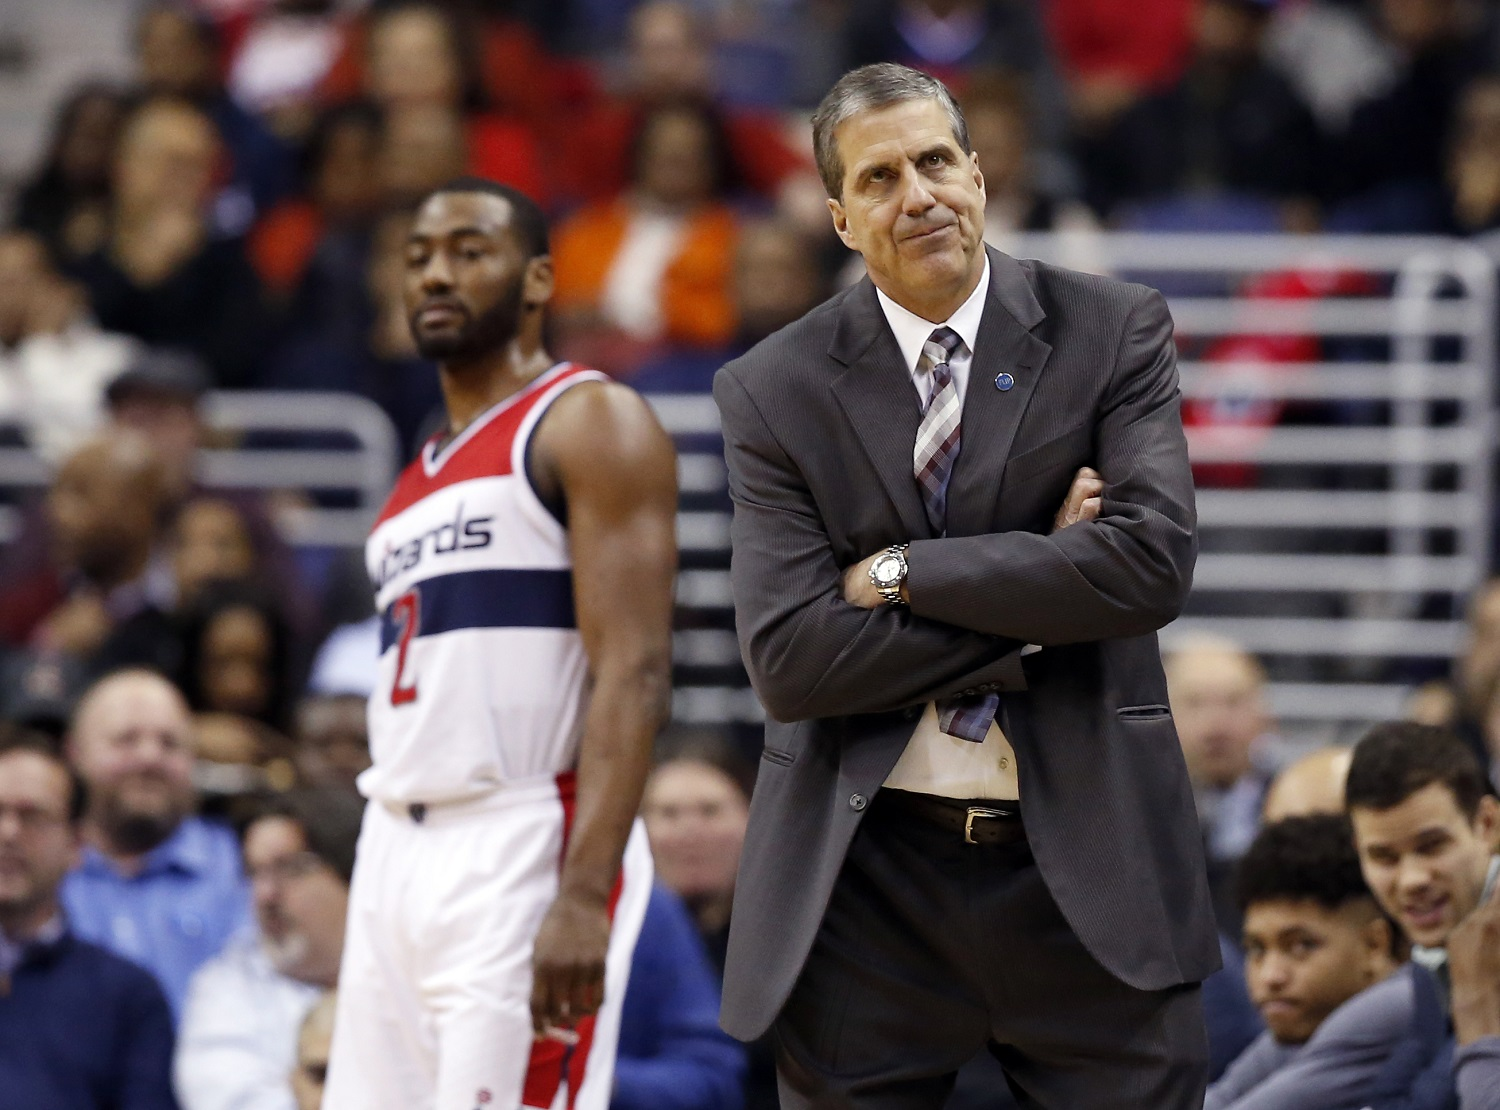 Washington Wizards head coach Randy Wittman reacts with Washington Wizards guard John Wall (2) behind him, in the first half of an NBA basketball game against the Miami Heat, Wednesday, Jan. 20, 2016, in Washington. (AP Photo/Alex Brandon)